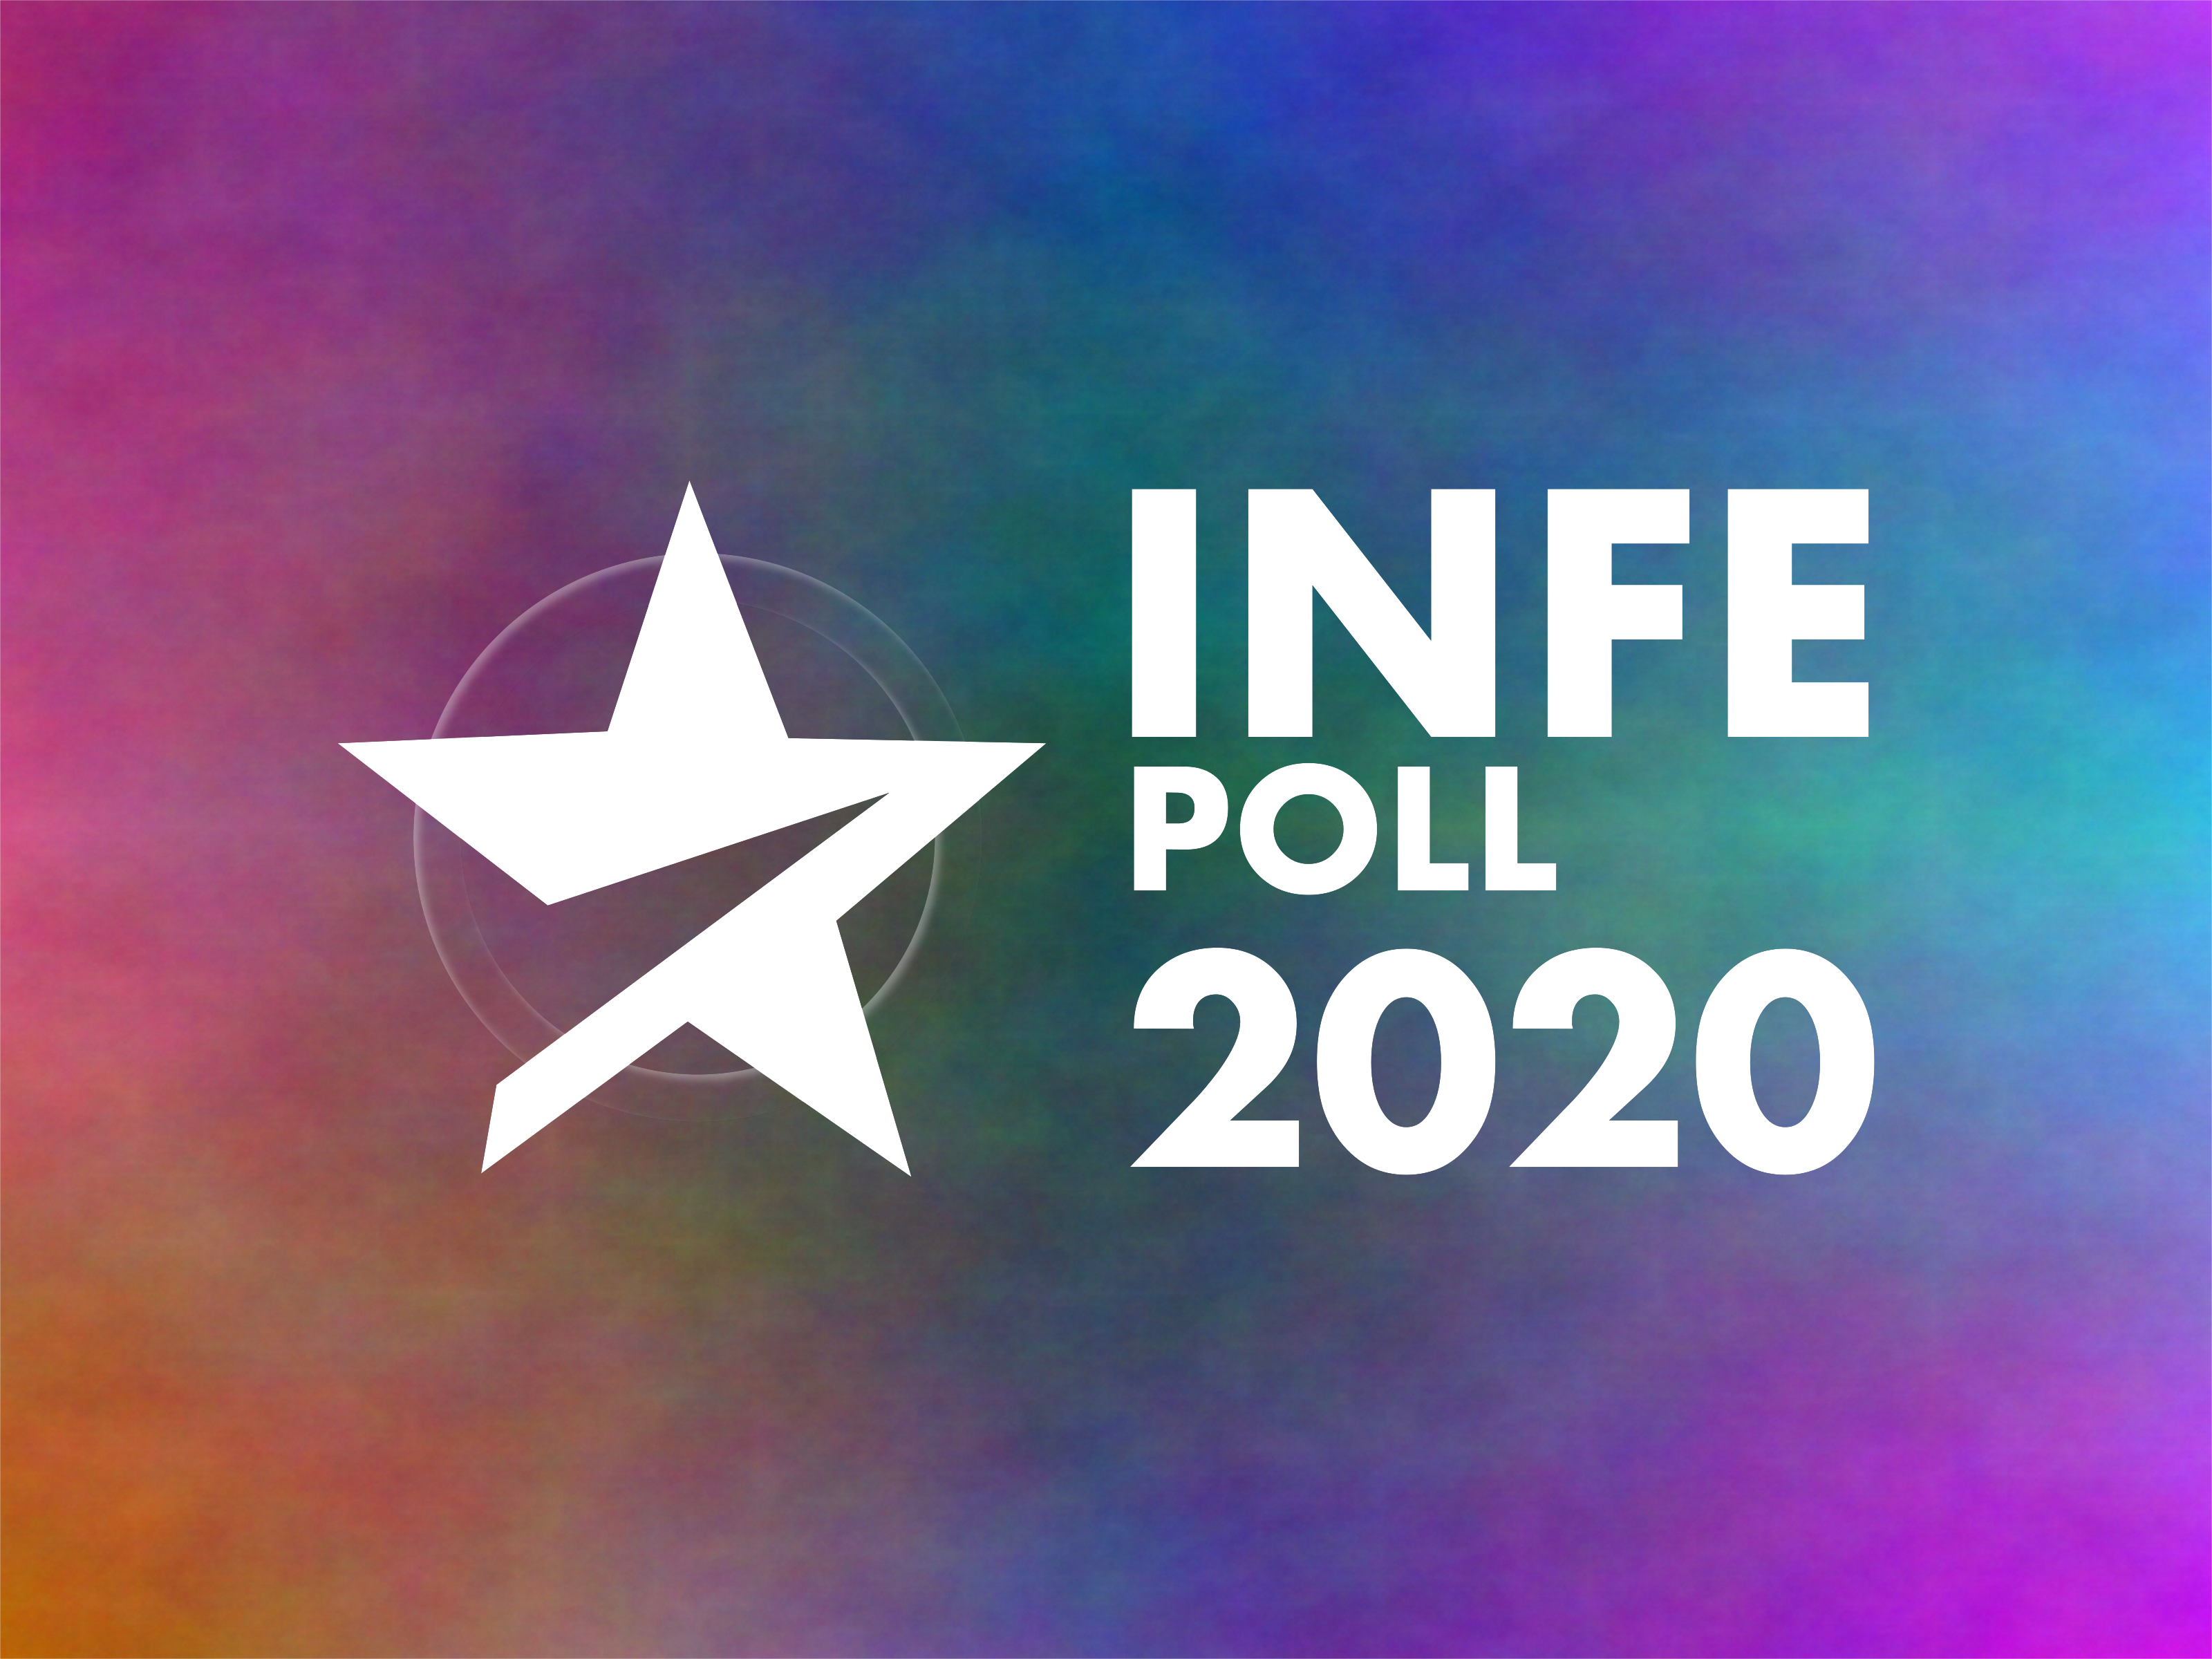 INFE Poll 2020: The fans from Poland have cast their votes!